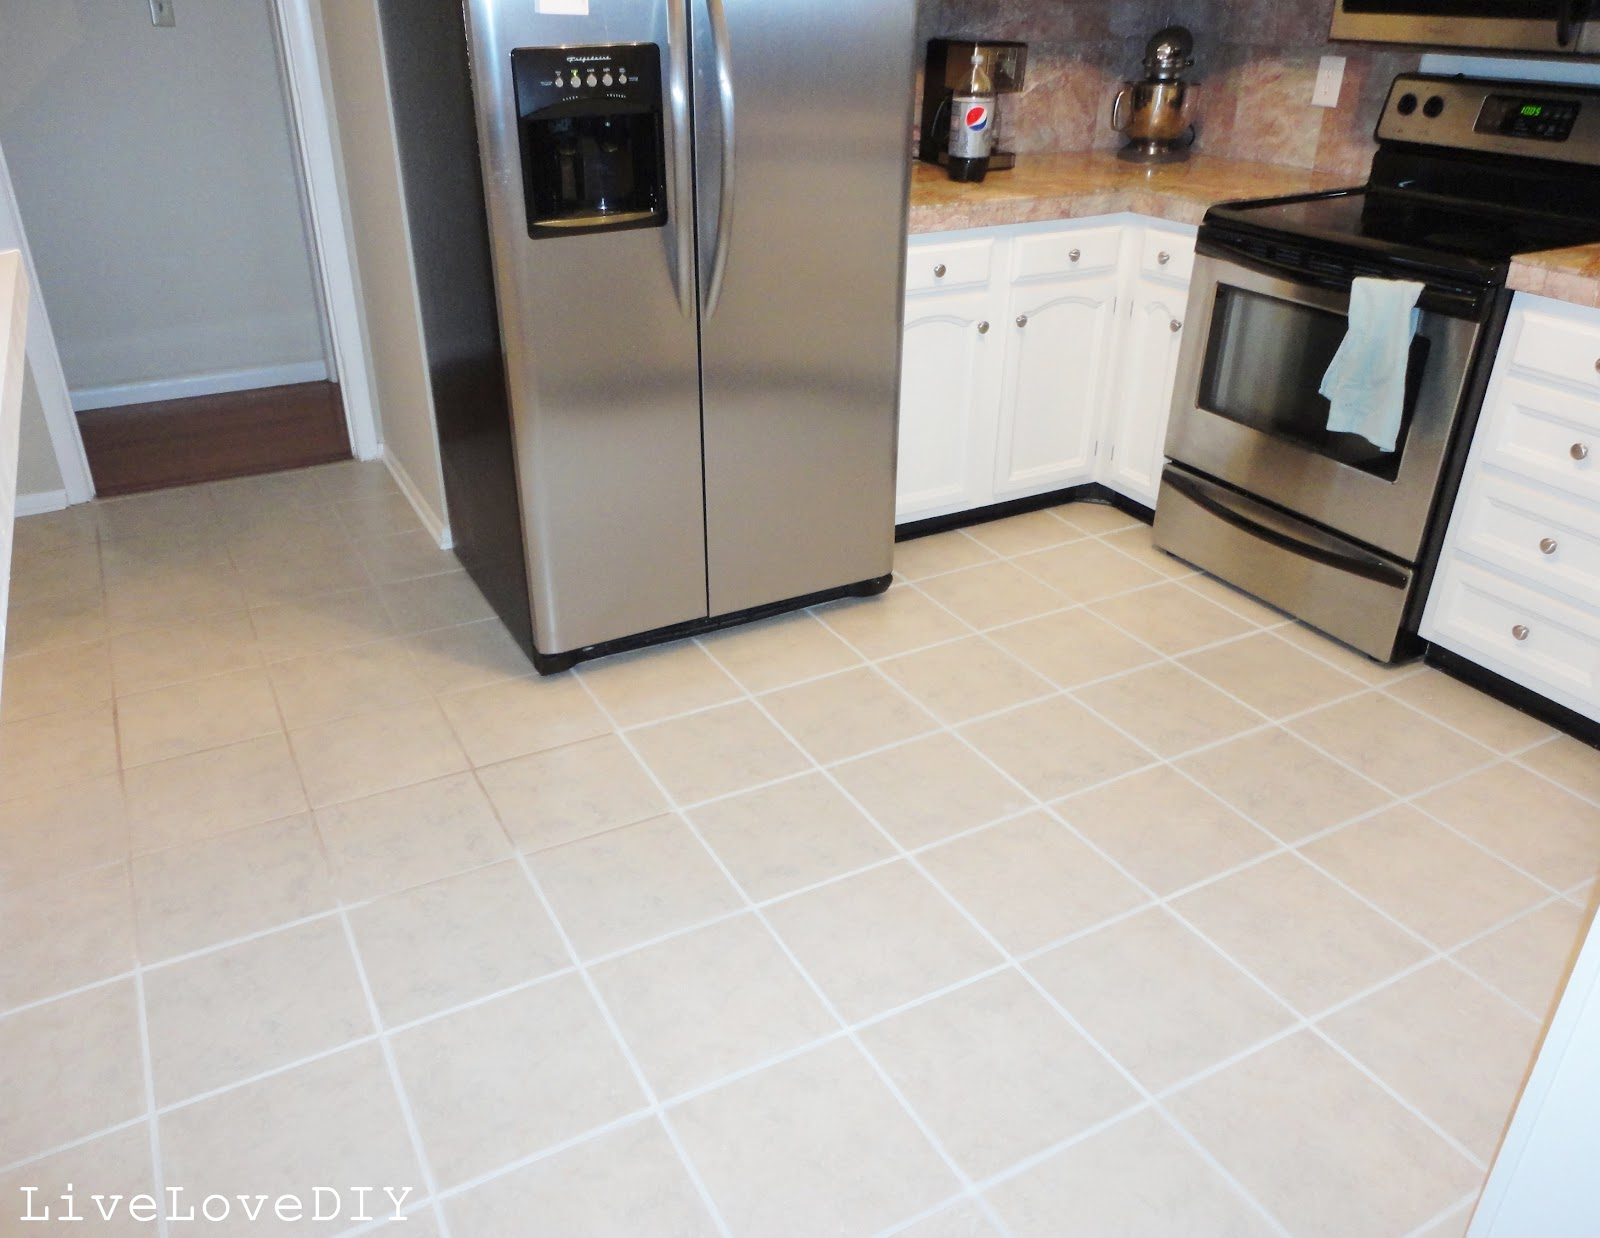 Livelovediy how to restore dirty tile grout - Como limpiar las baldosas de la cocina ...